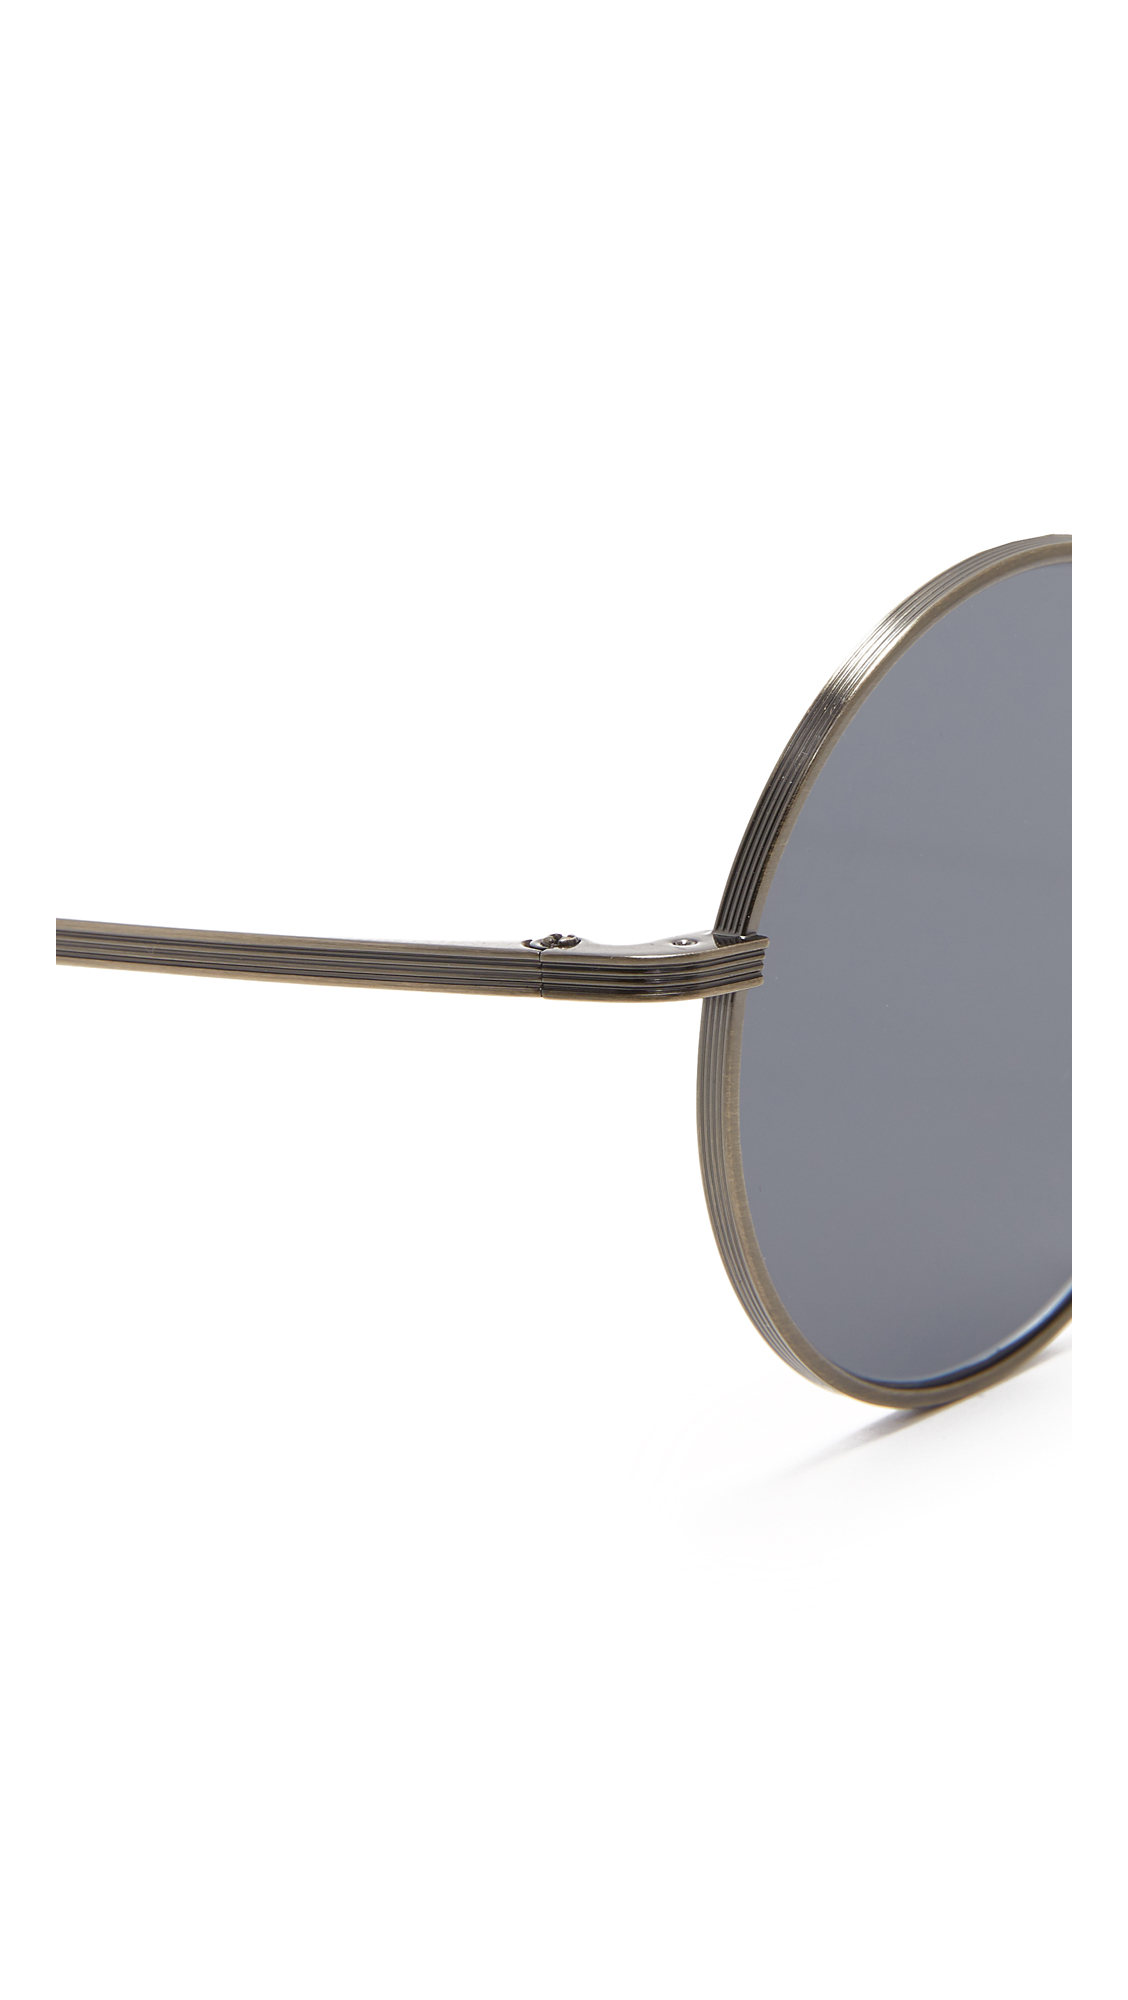 13a4c1fea5 Oliver Peoples The Row After Midnight Flat Lens Sunglasses